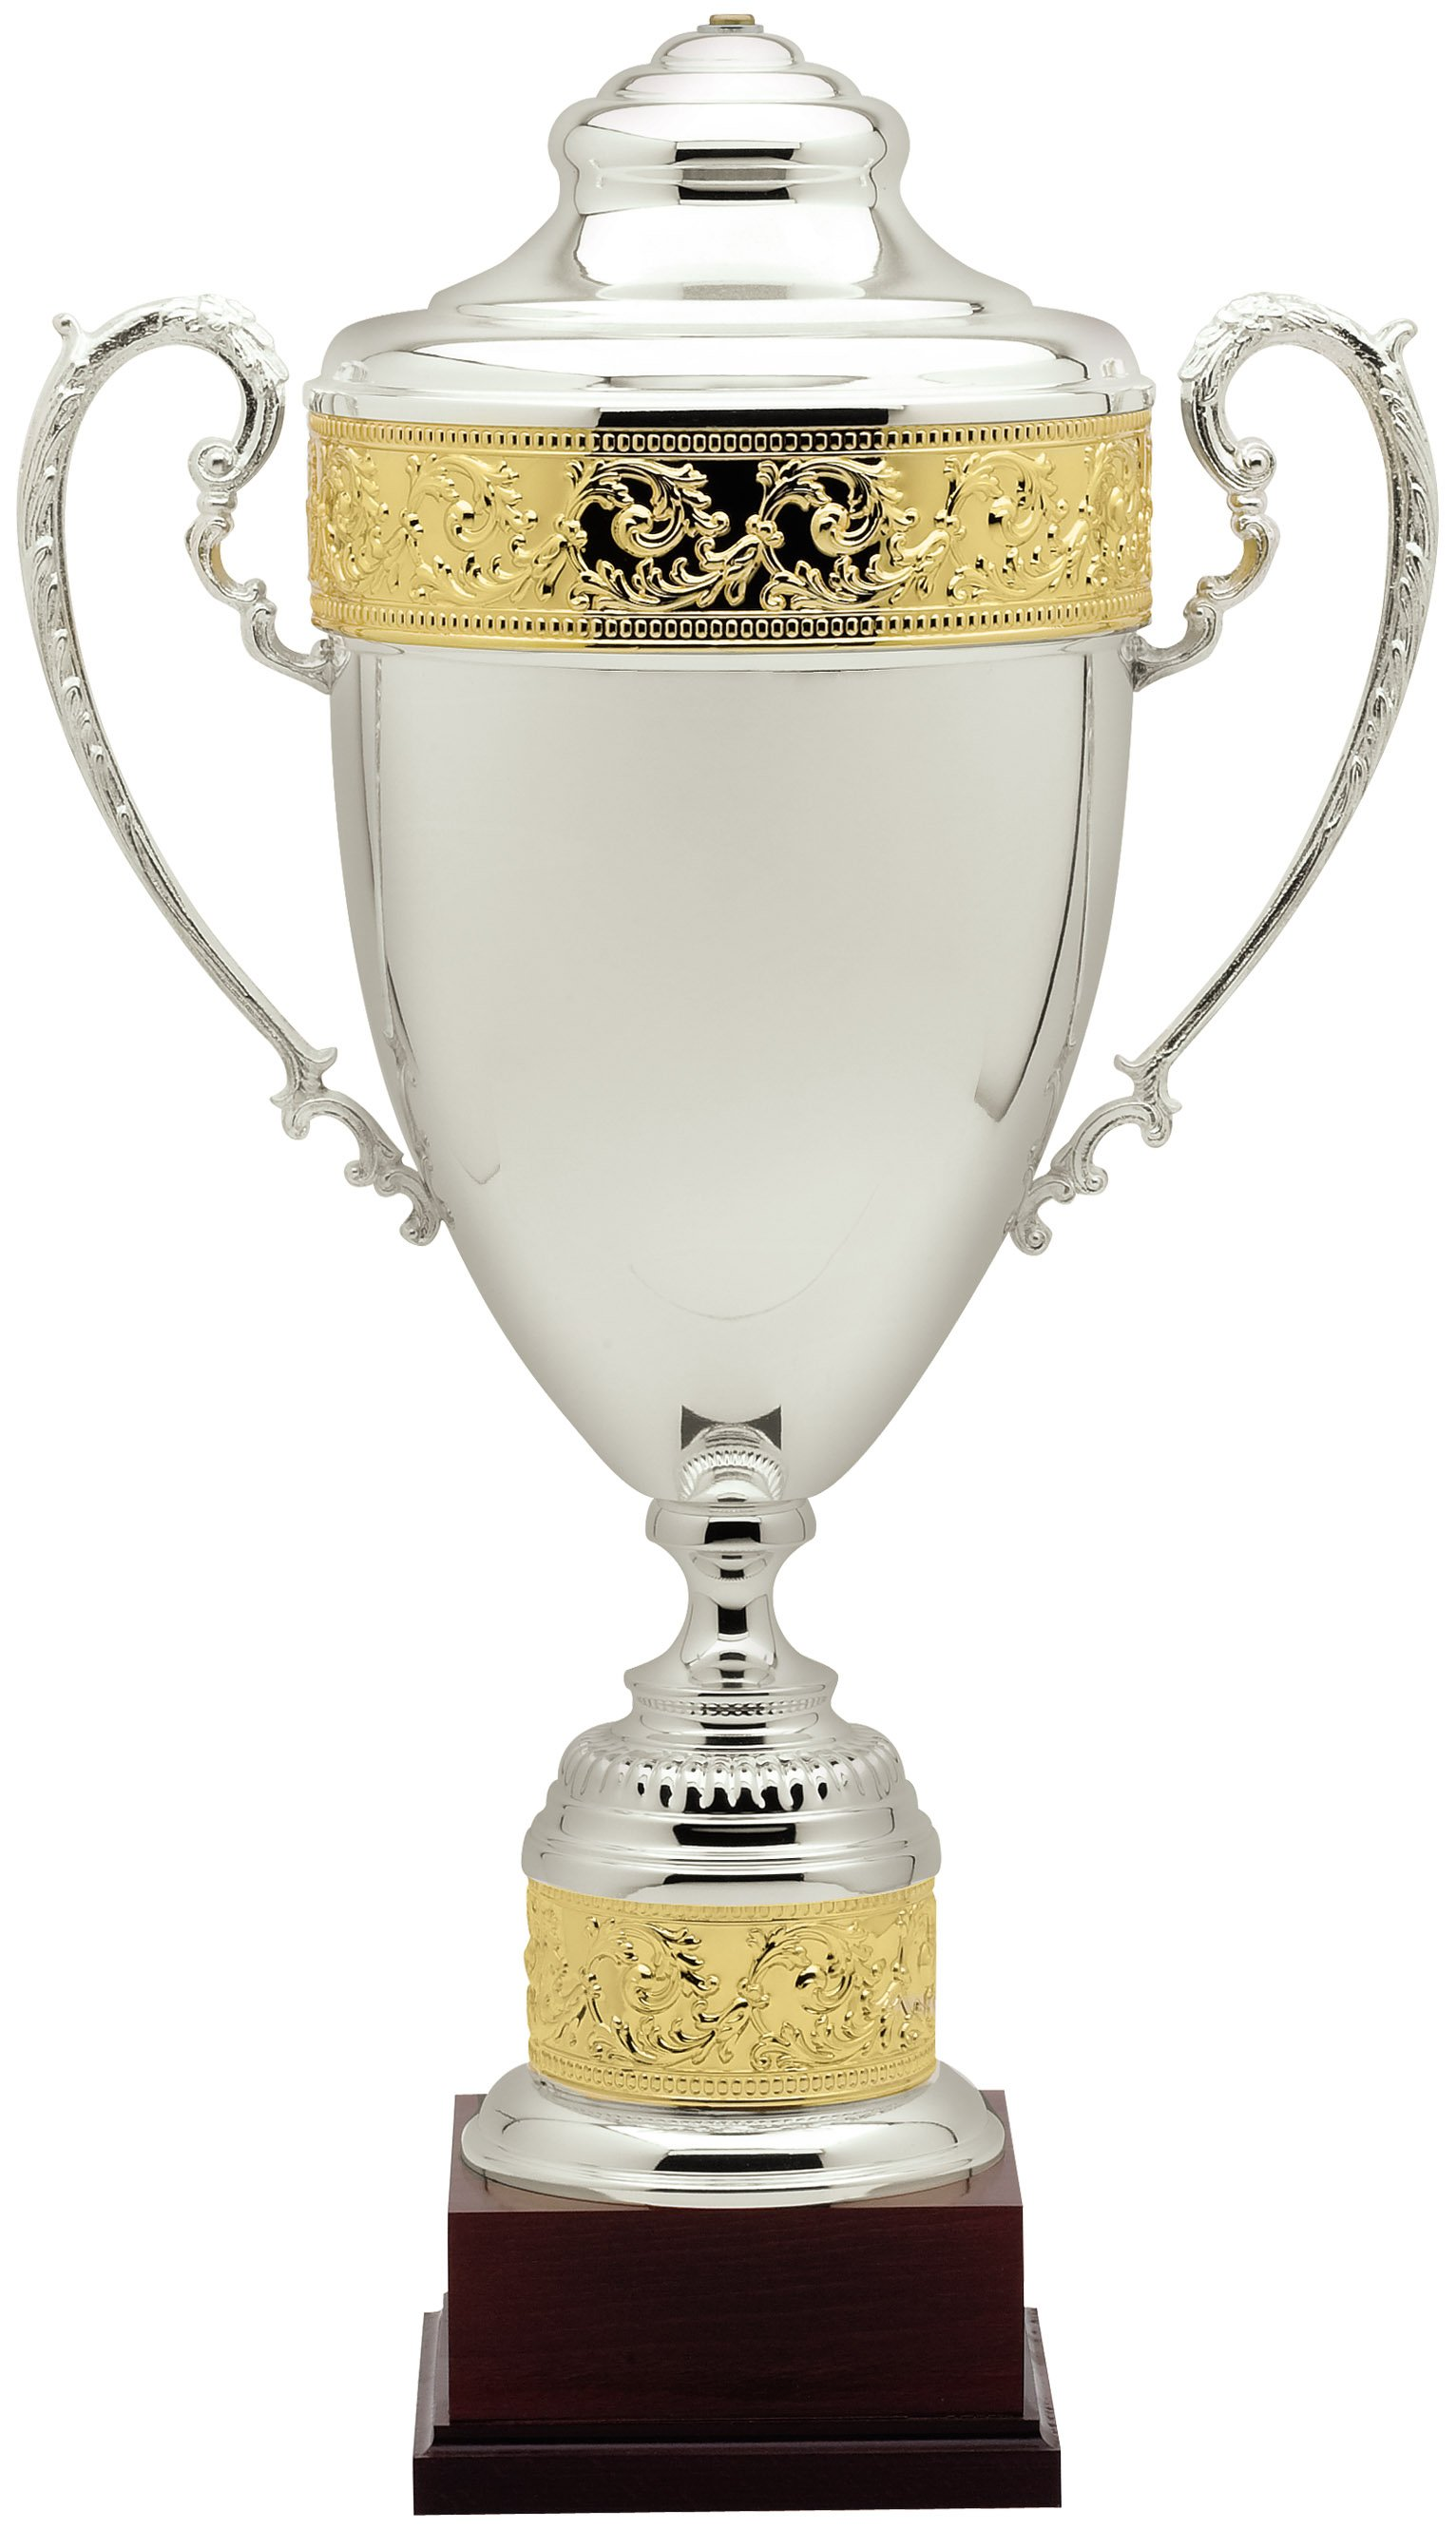 Silver Amp Gold Plated Italian Metal Cup On Mahogany Wood